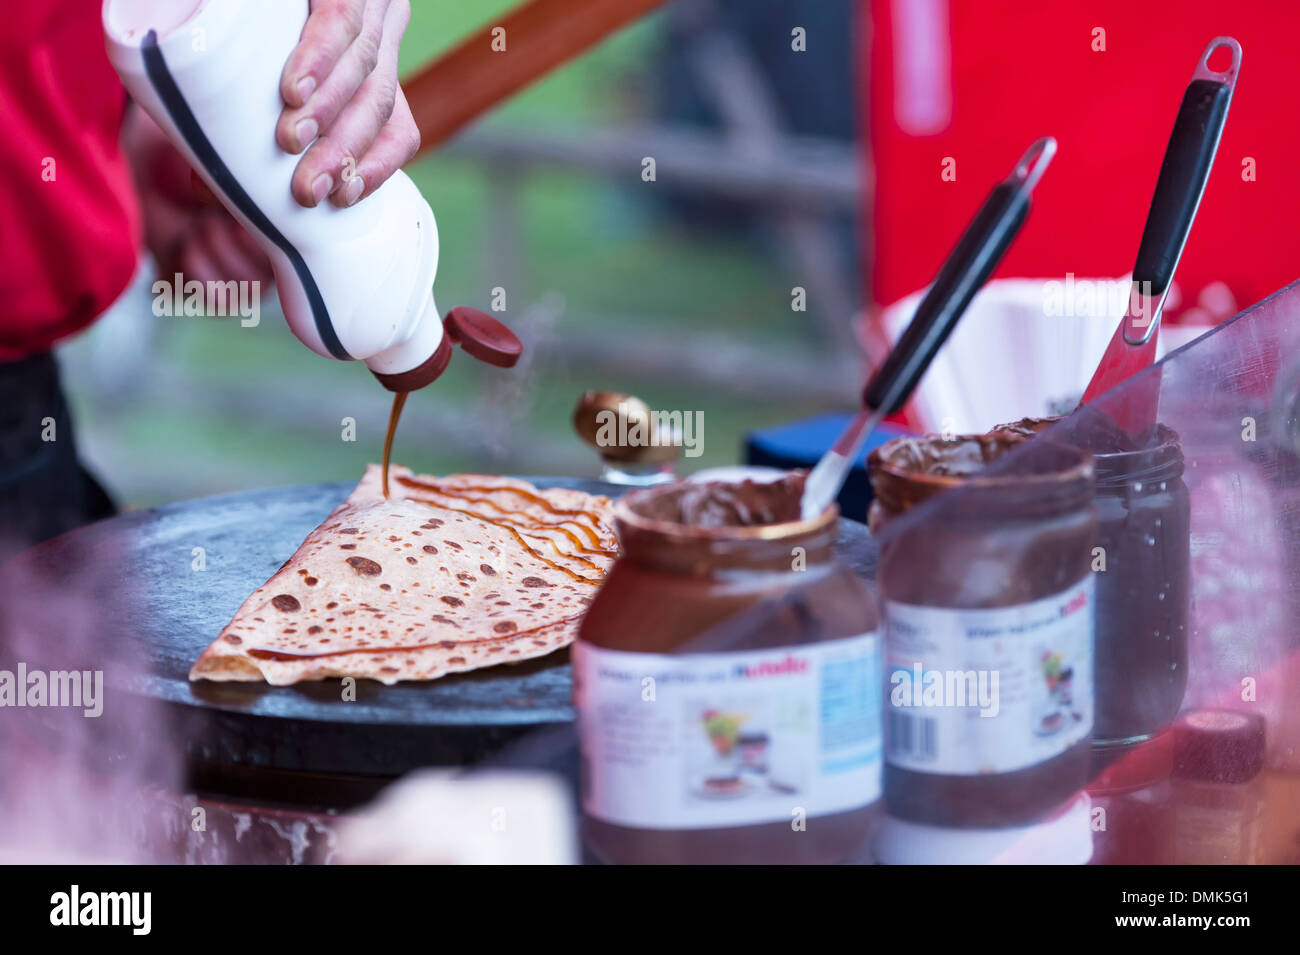 A male hand pouring syrup onto sweet crepe pancake that are being made and sold at a creperie take away market stall trade stand - Stock Image